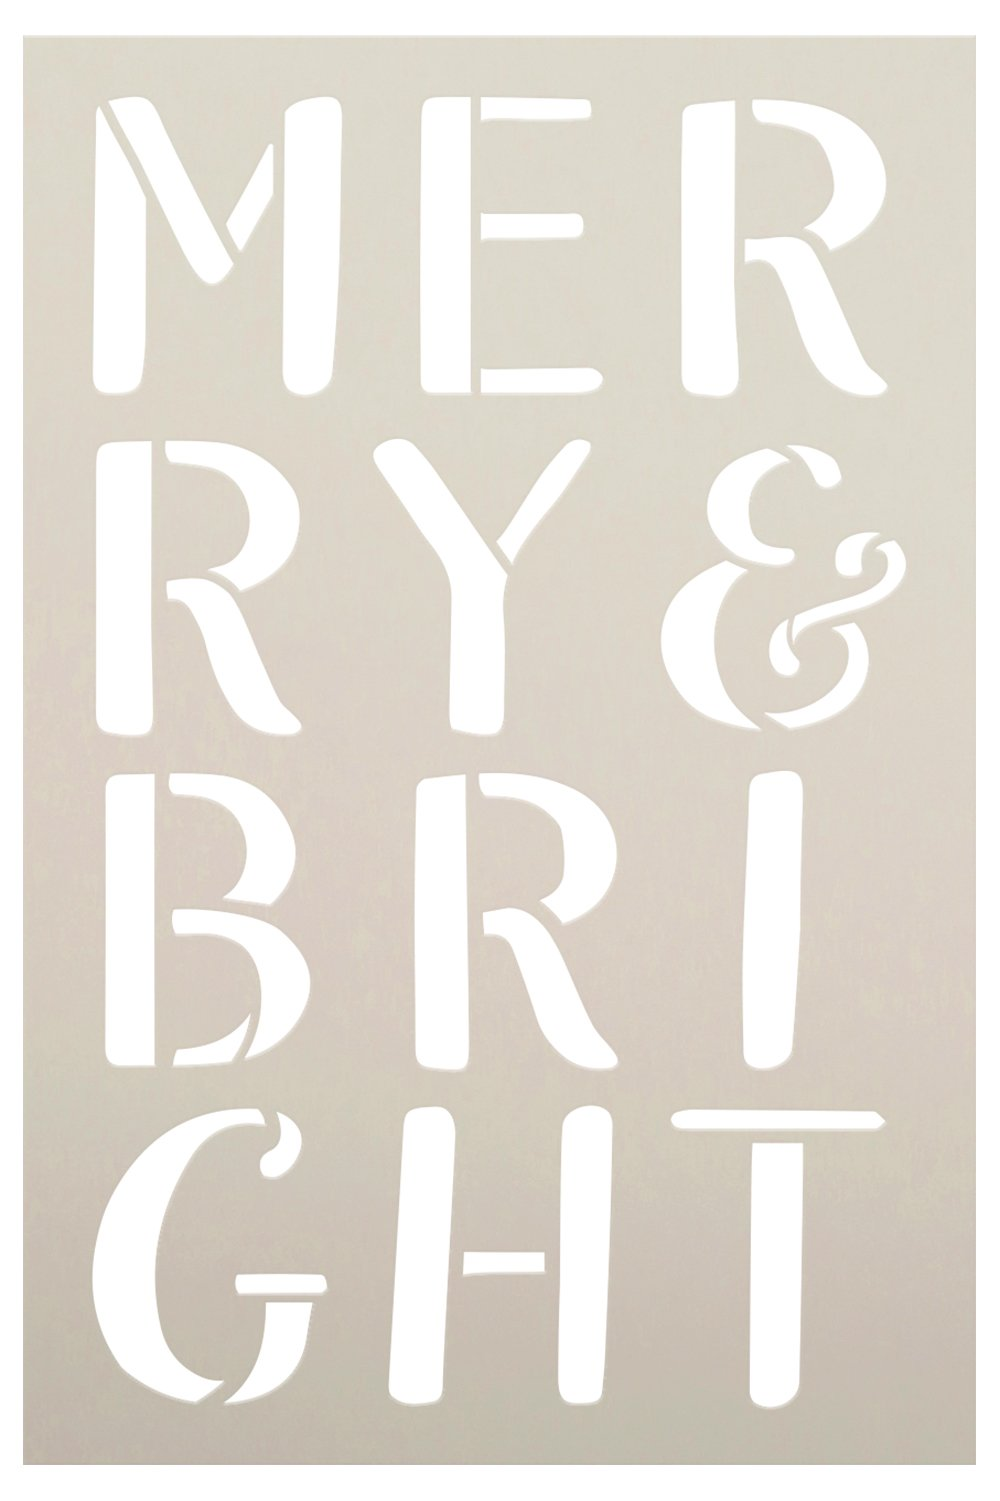 Merry & Bright Stacked Letter Stencil by StudioR12 | Craft DIY Christmas Holiday Home Decor | Paint Wood Sign | Reusable Mylar Template | Select Size